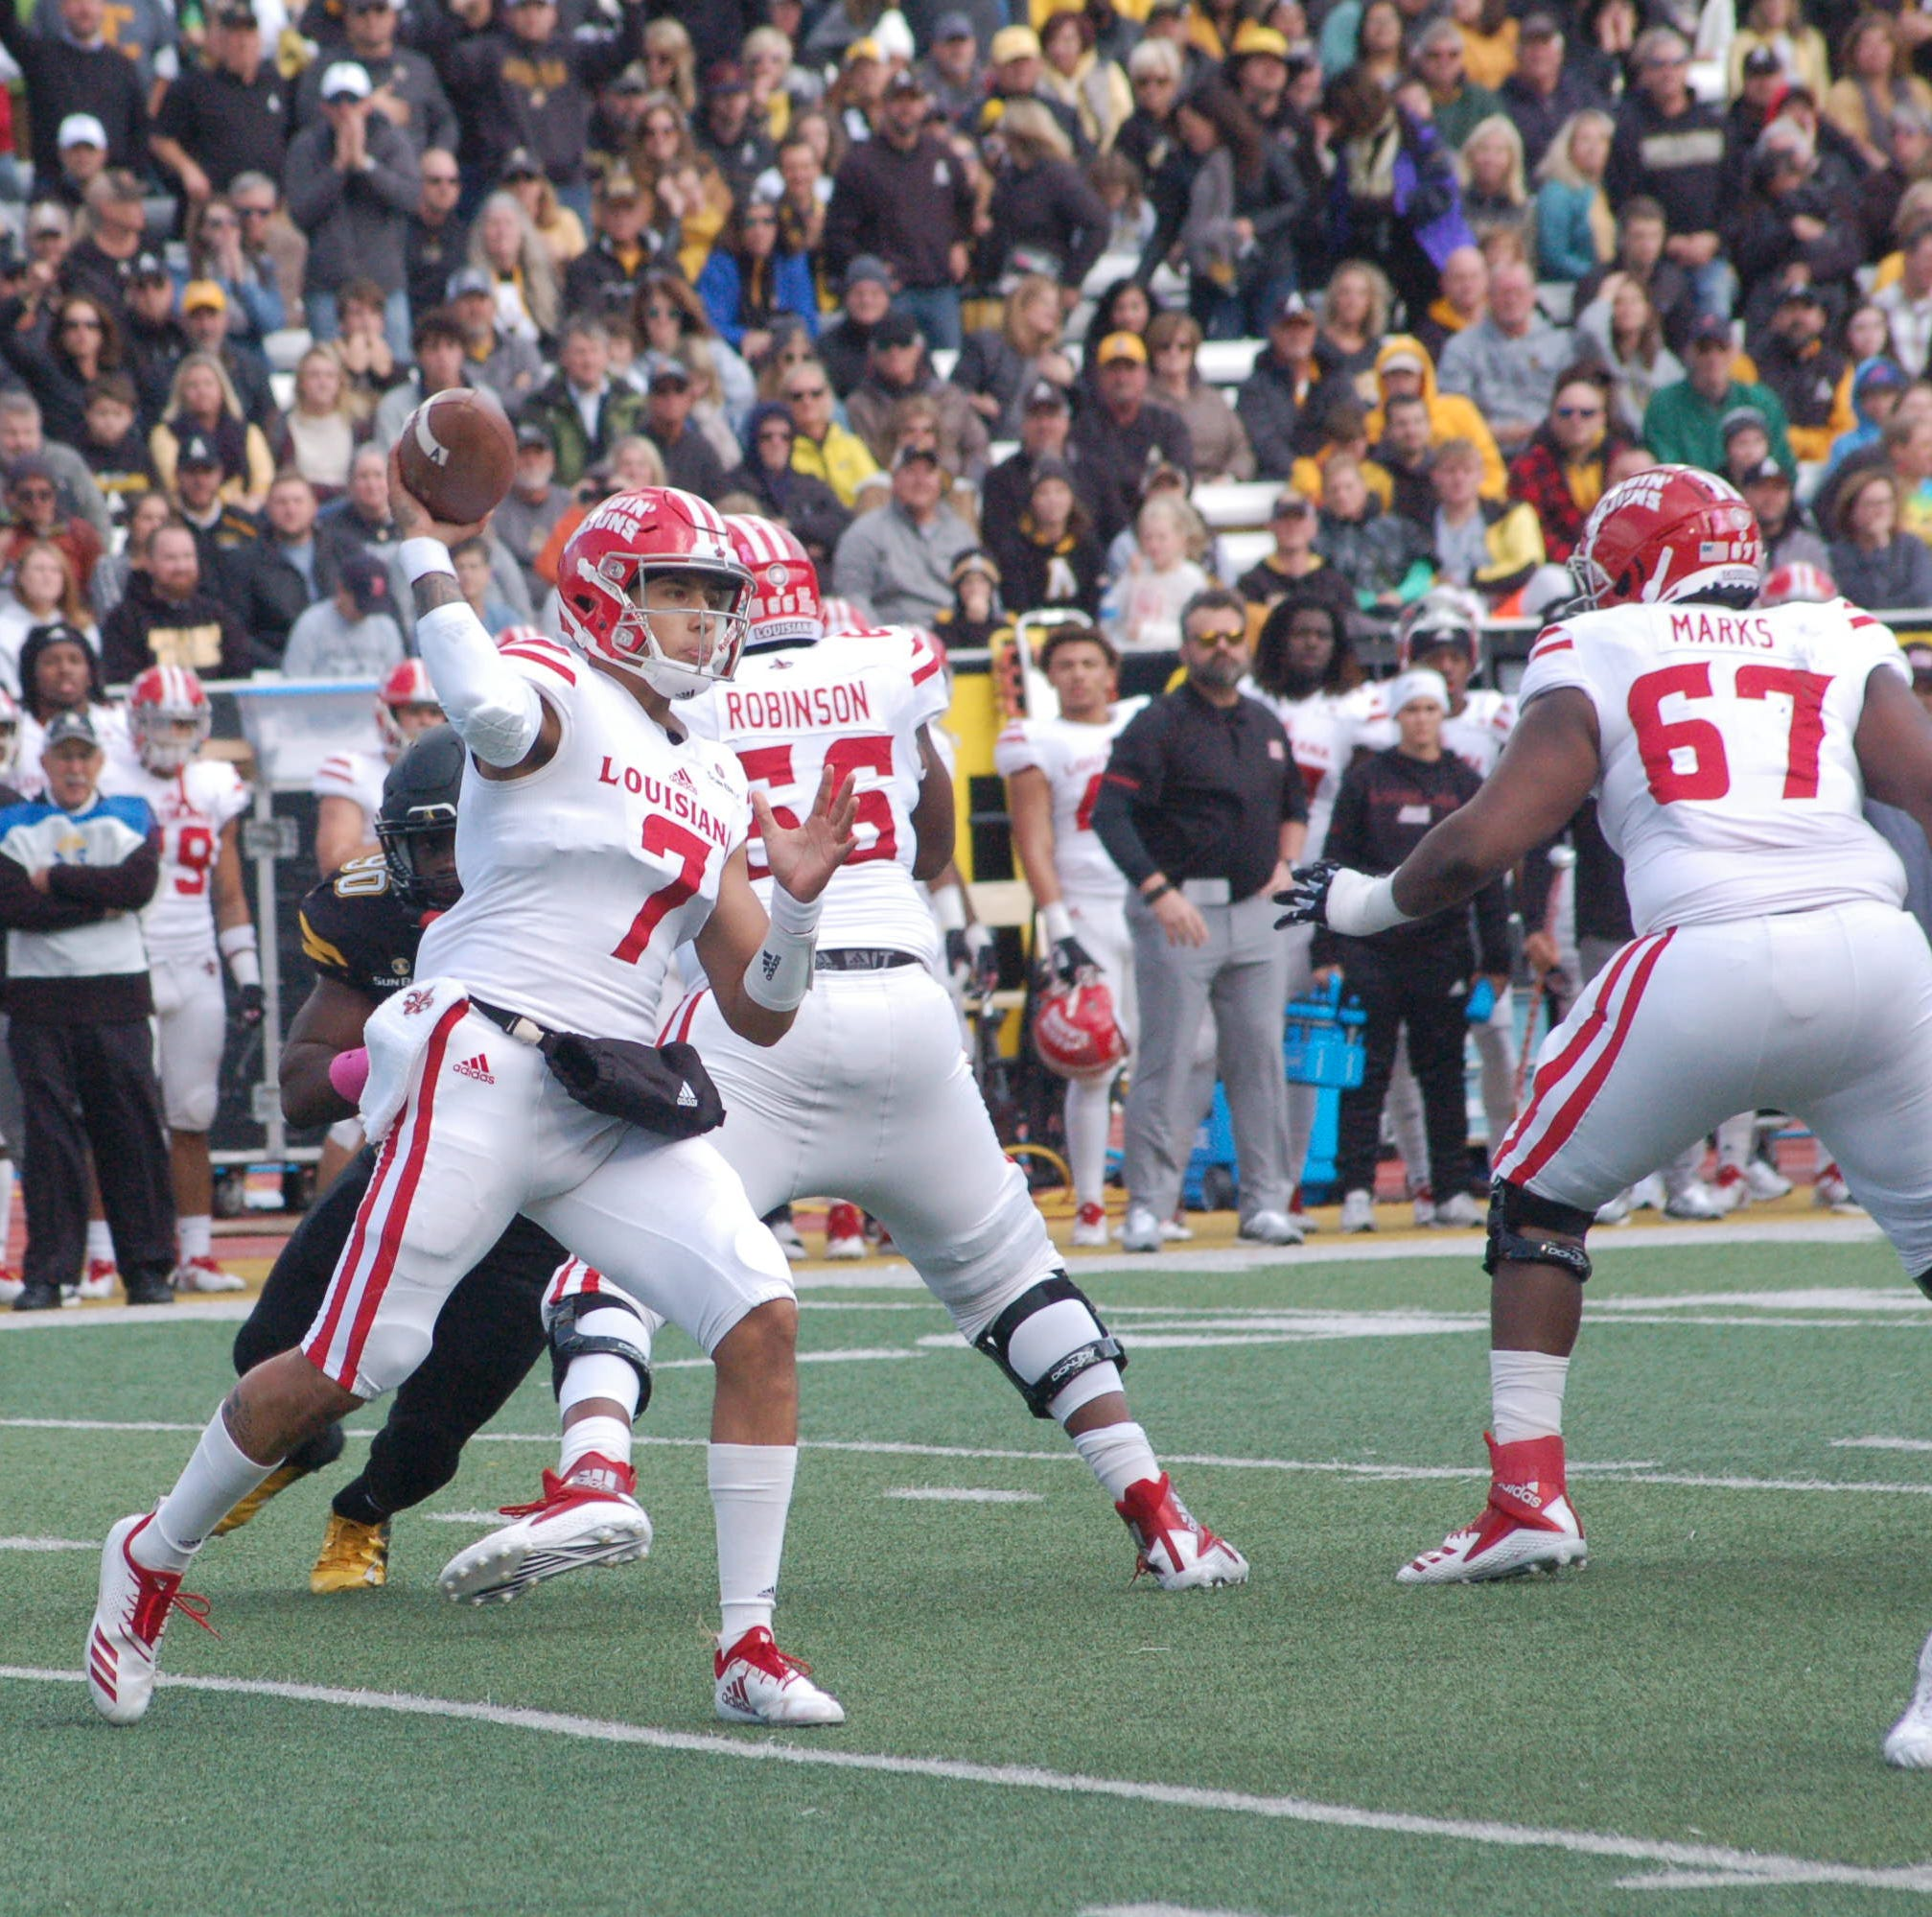 Cajuns give spirited effort vs. App State but fall short